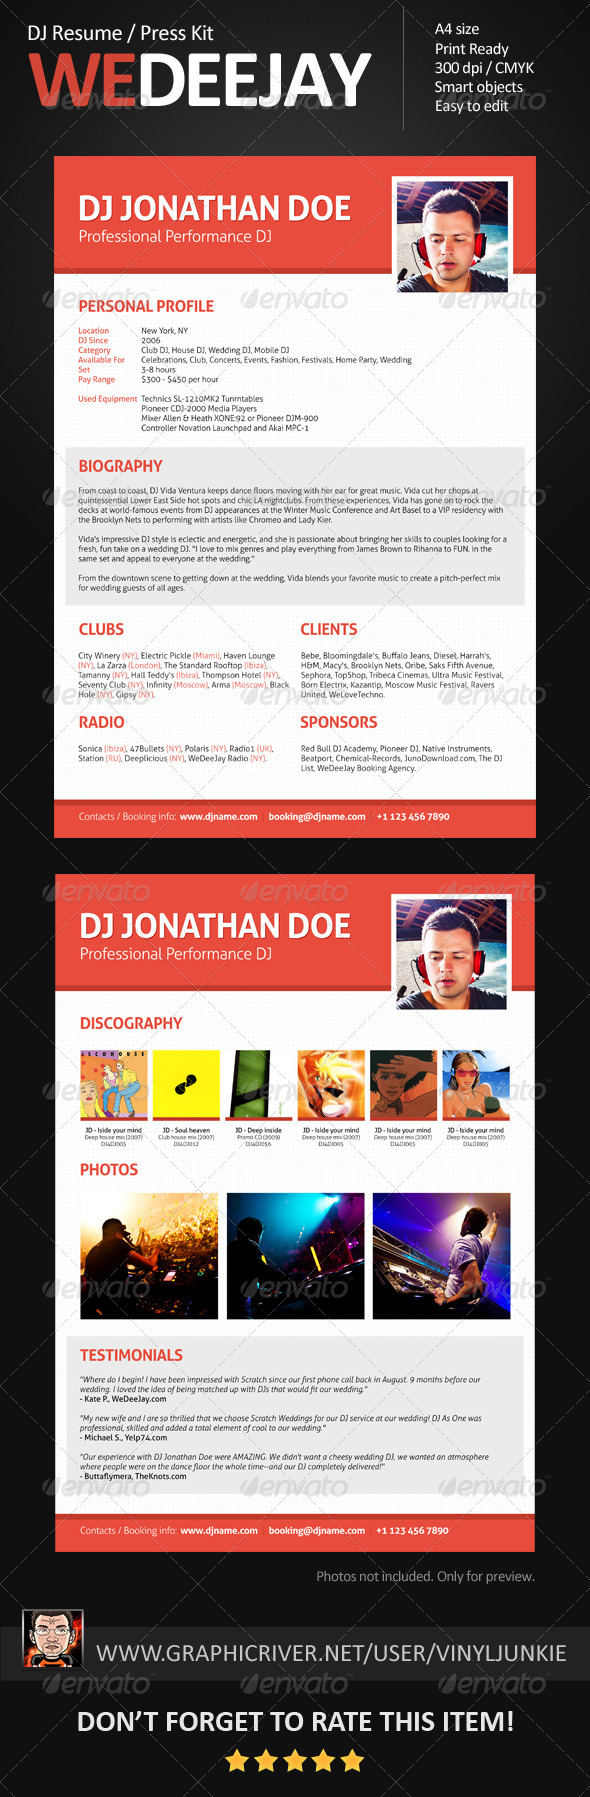 GraphicRiver WeDeeJay DJ Resume Press Kit 5616307